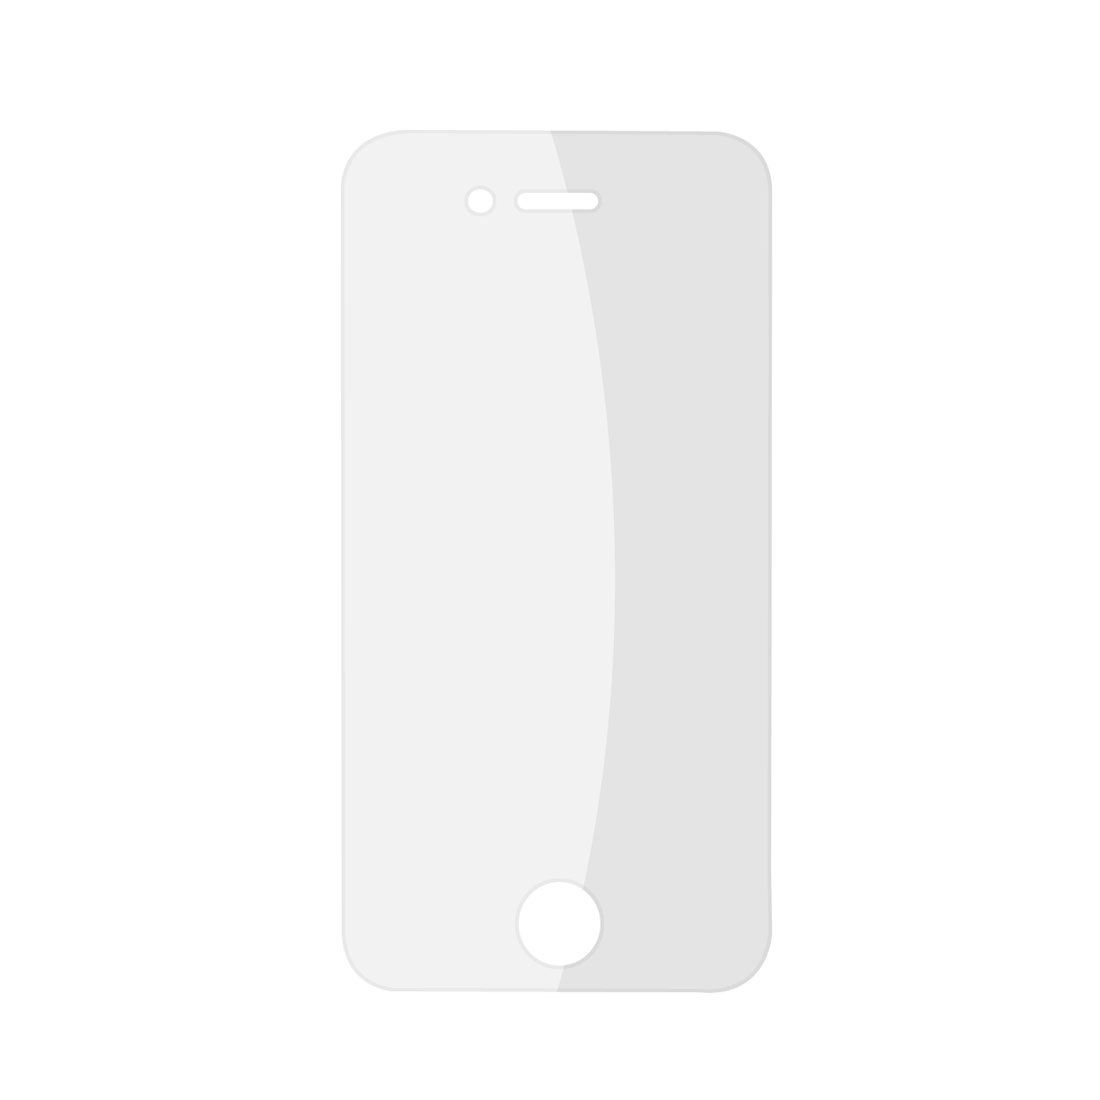 Clear Matte LCD Screen Guard Film Protector for iPhone 4 4G 4S 4GS